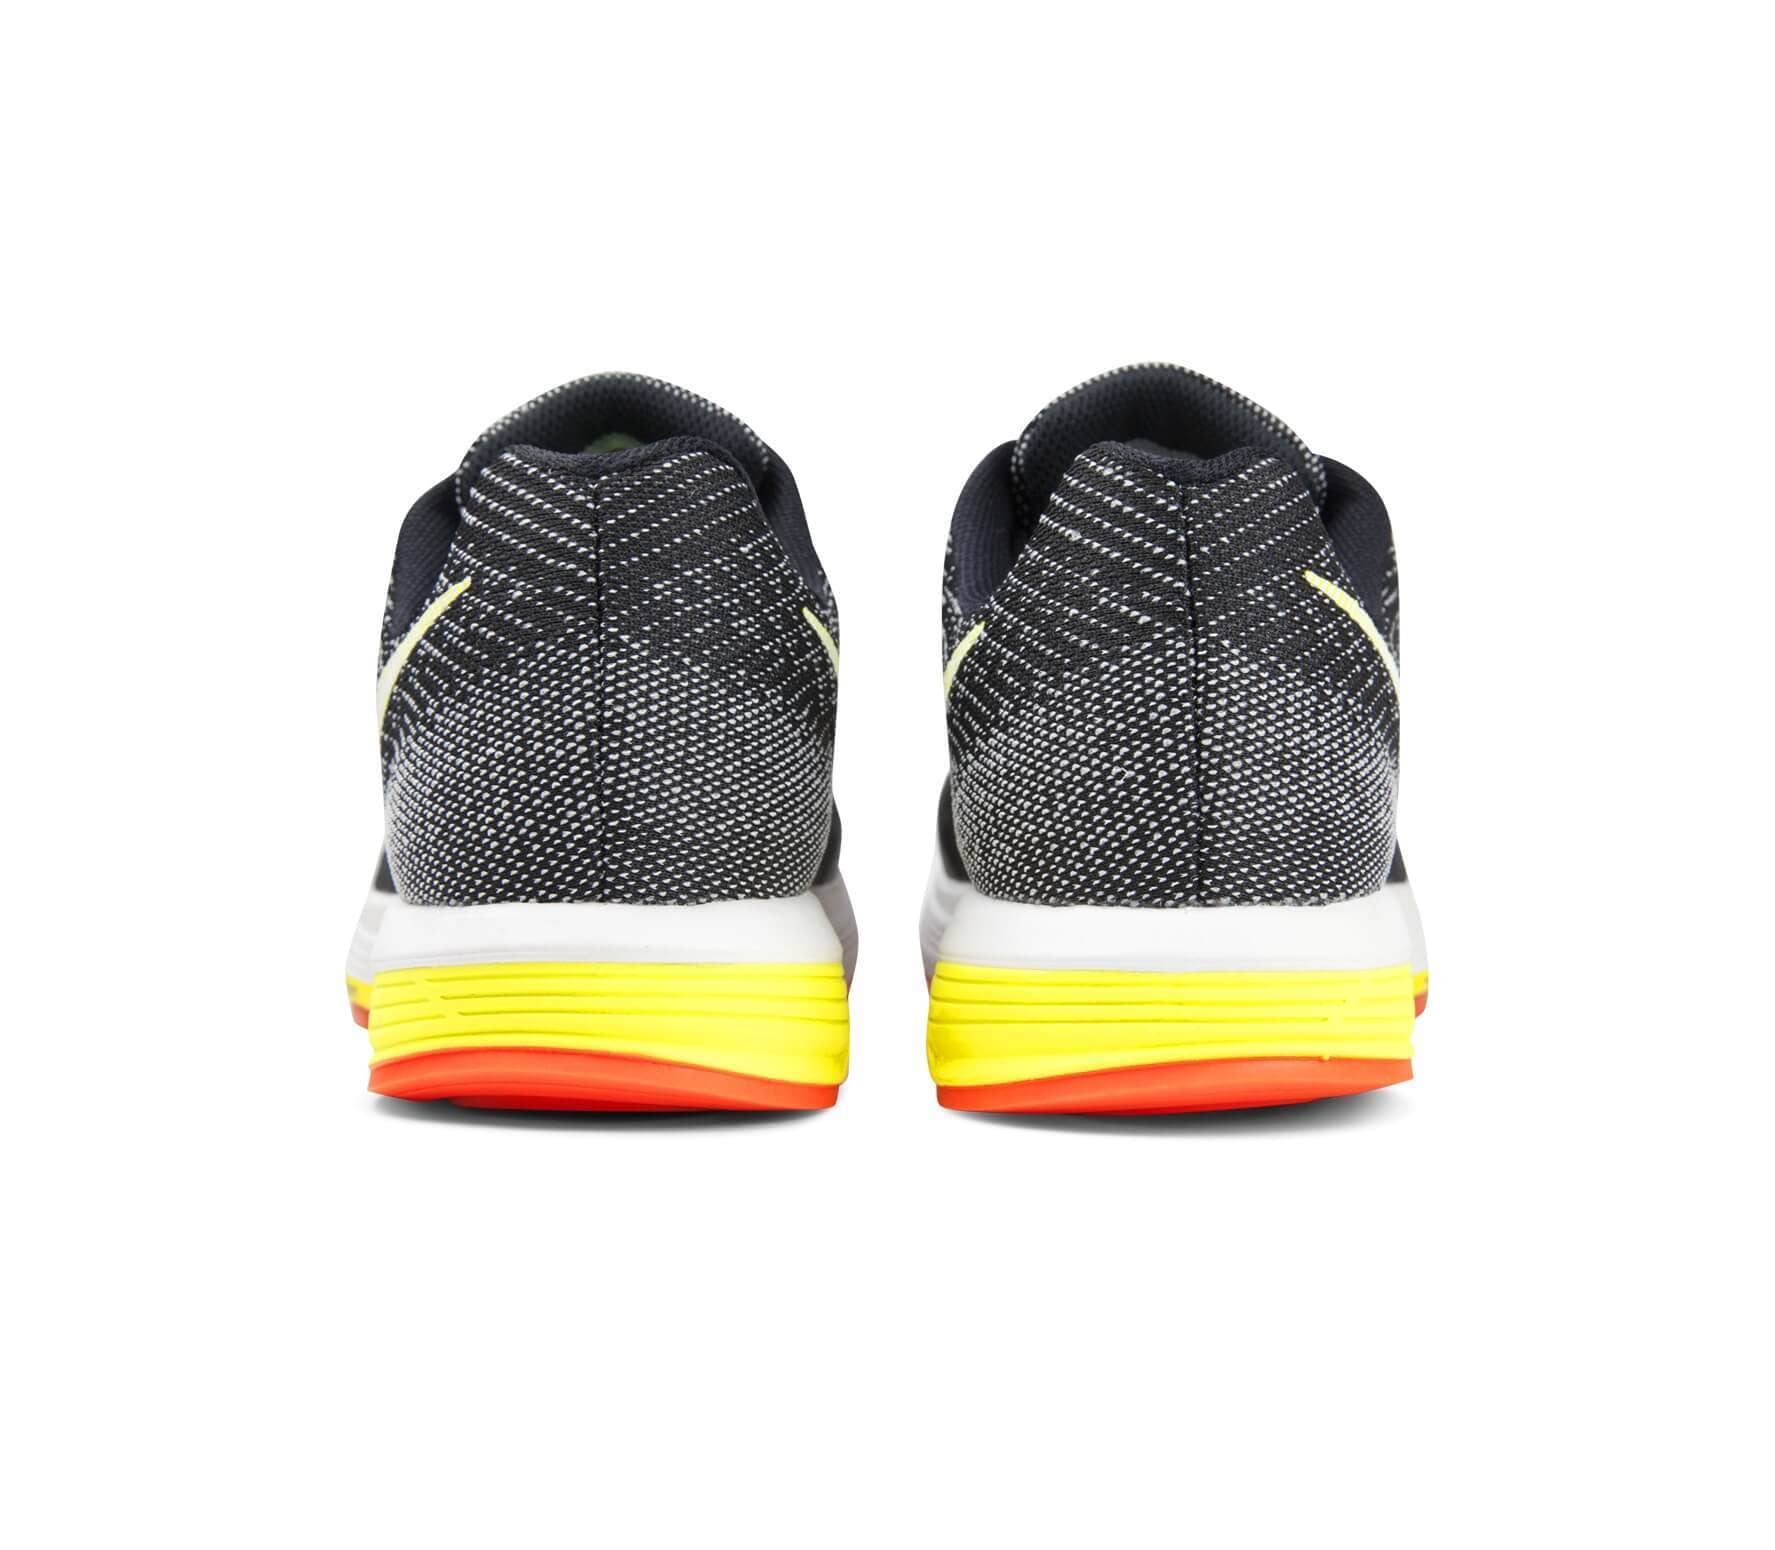 Who Made Nike Cycling Shoes